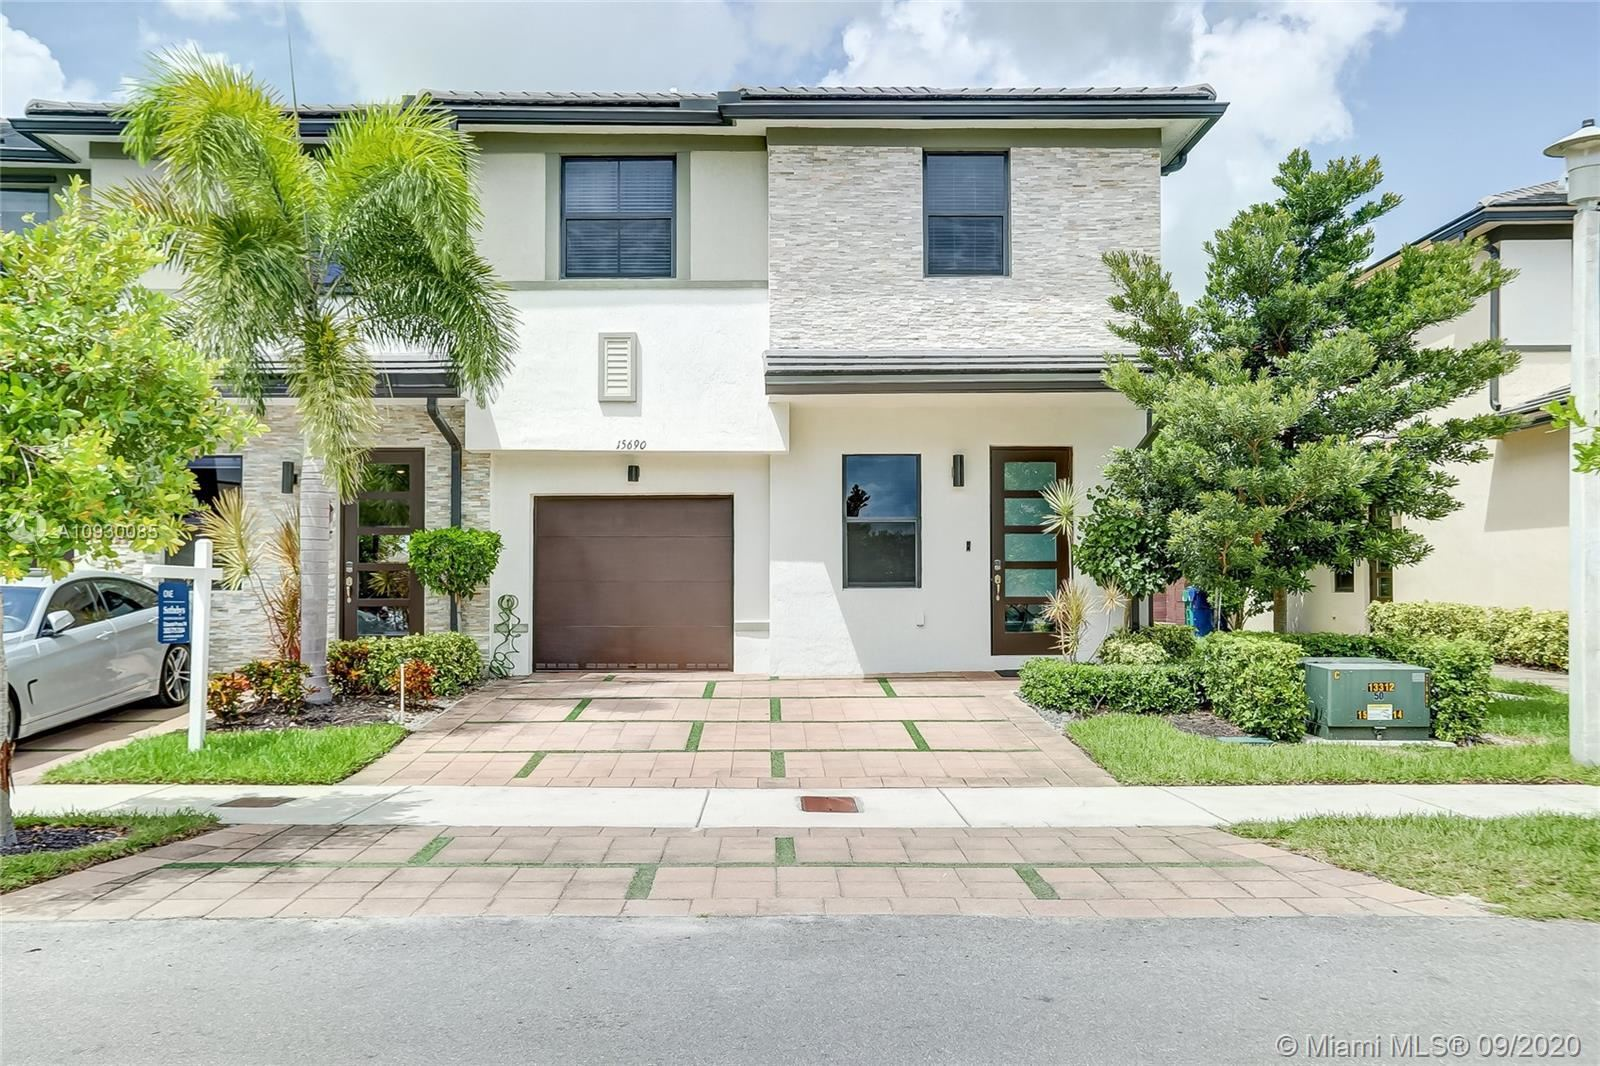 15690 NW 91st Ct #15690, Miami Lakes, FL 33018 - #: A10930085